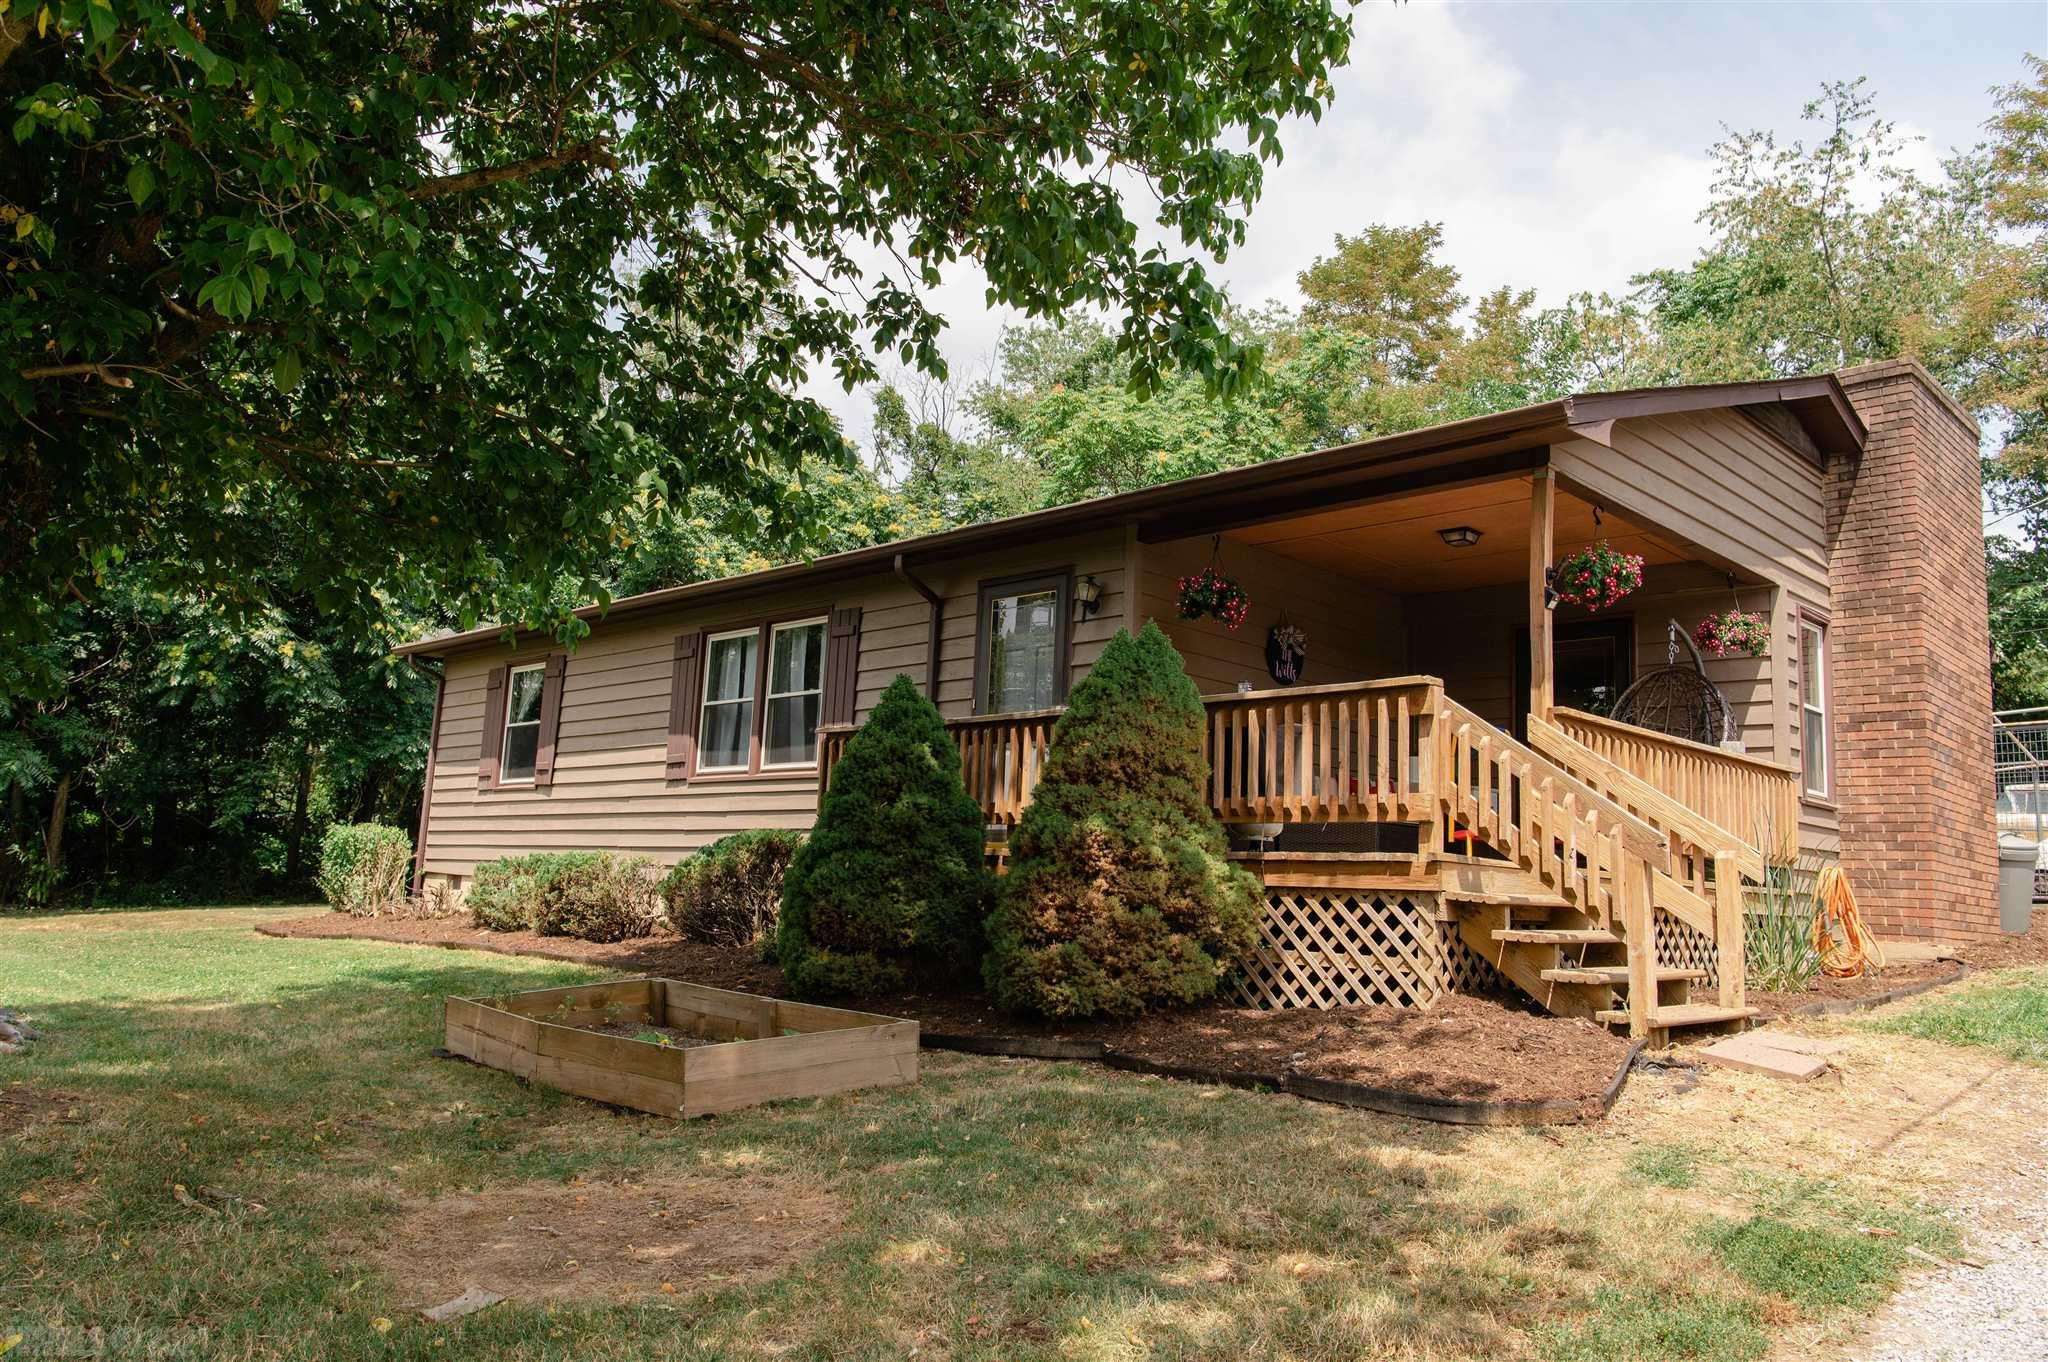 Don't miss this cute gem in the perfect location in Christiansburg.  One level living, on a beautiful one acre lot with lots of charm.  This home has 2 bedrooms with 1 bath, large kitchen area, fireplace insert, cozy front porch, and huge detached garage. Make your appointment today.